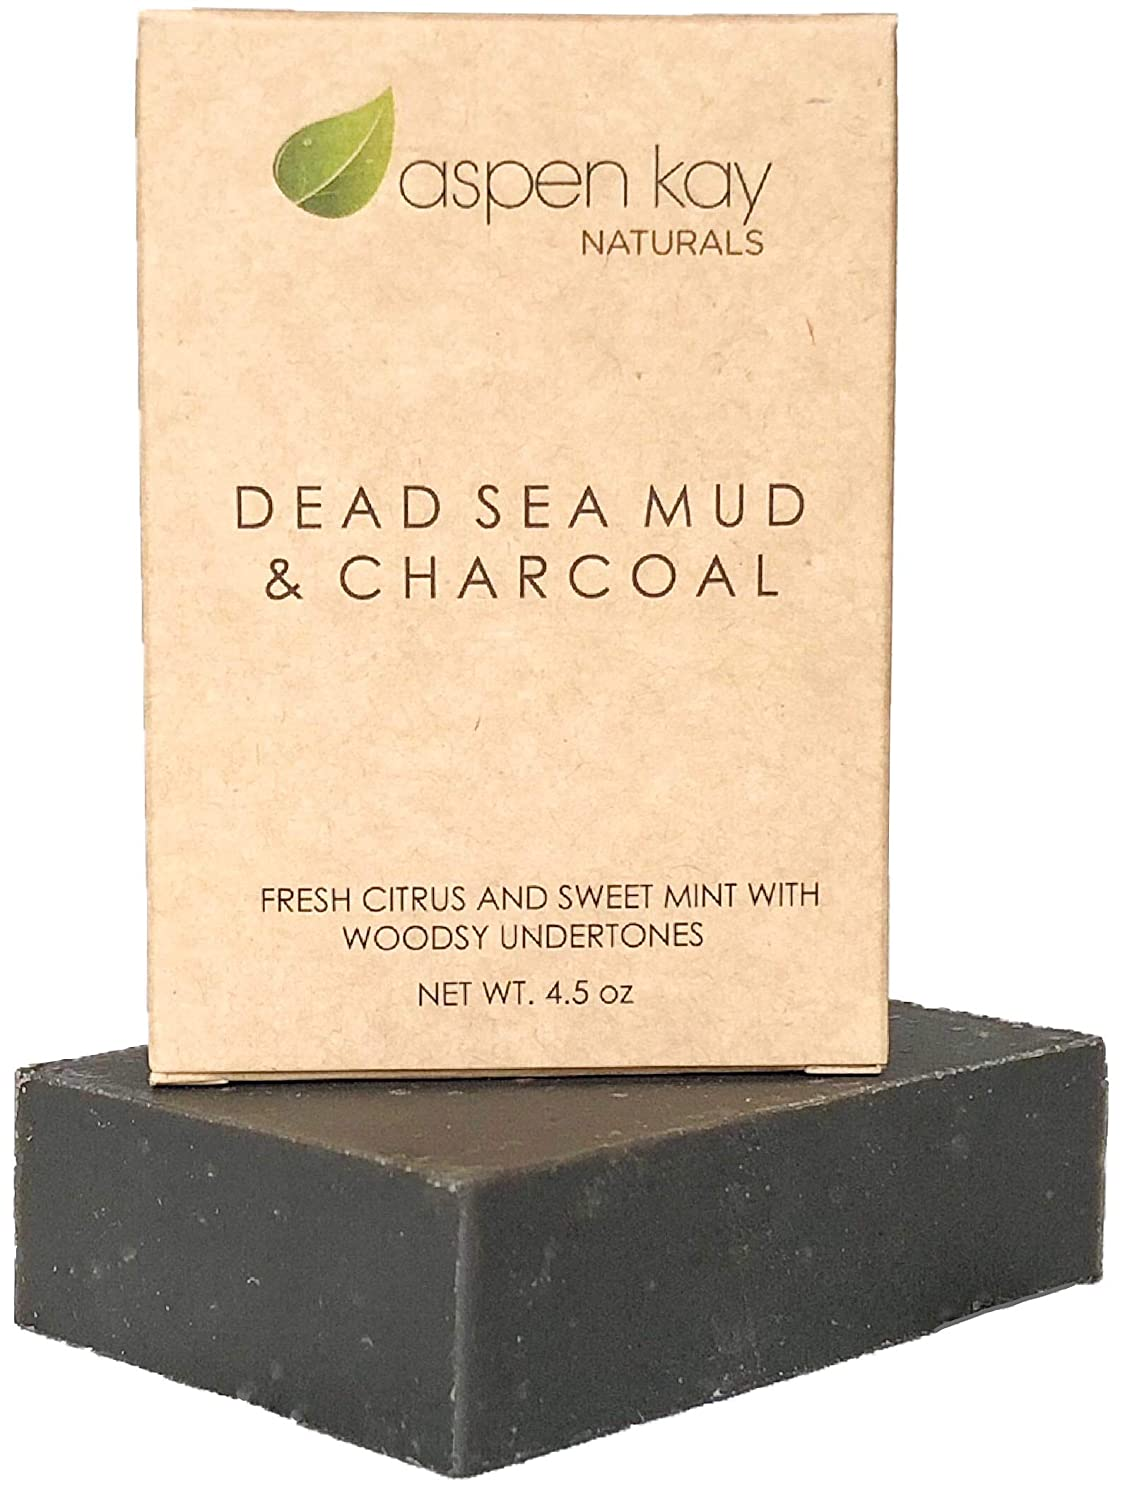 Dead Sea Mud Soap Bar 100% Organic & Natural. With Activated Charcoal & Therapeutic Grade Essential Oils. Face Soap or Body Soap. For Men, Women & Teens. Chemical Free. 4oz Bar. Aspen Kay Naturals